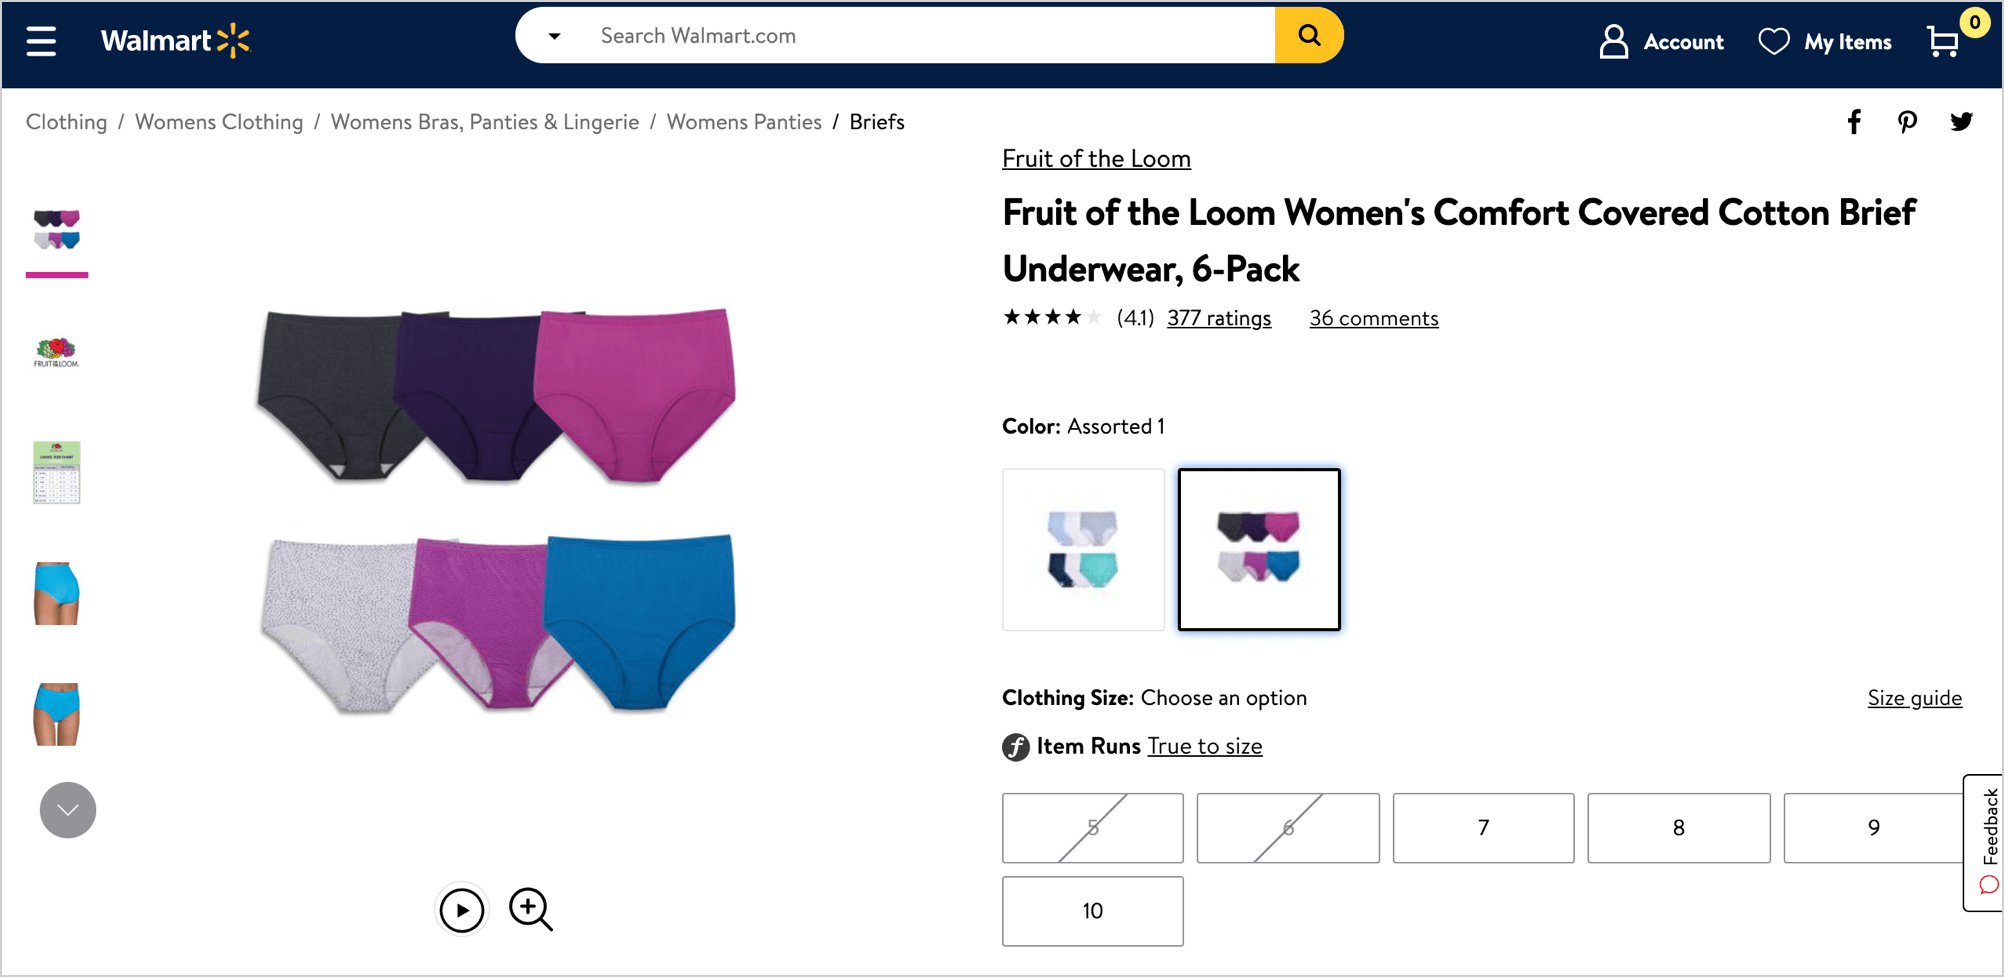 Fruit of the Loom's Walmart listing with high-quality variant images